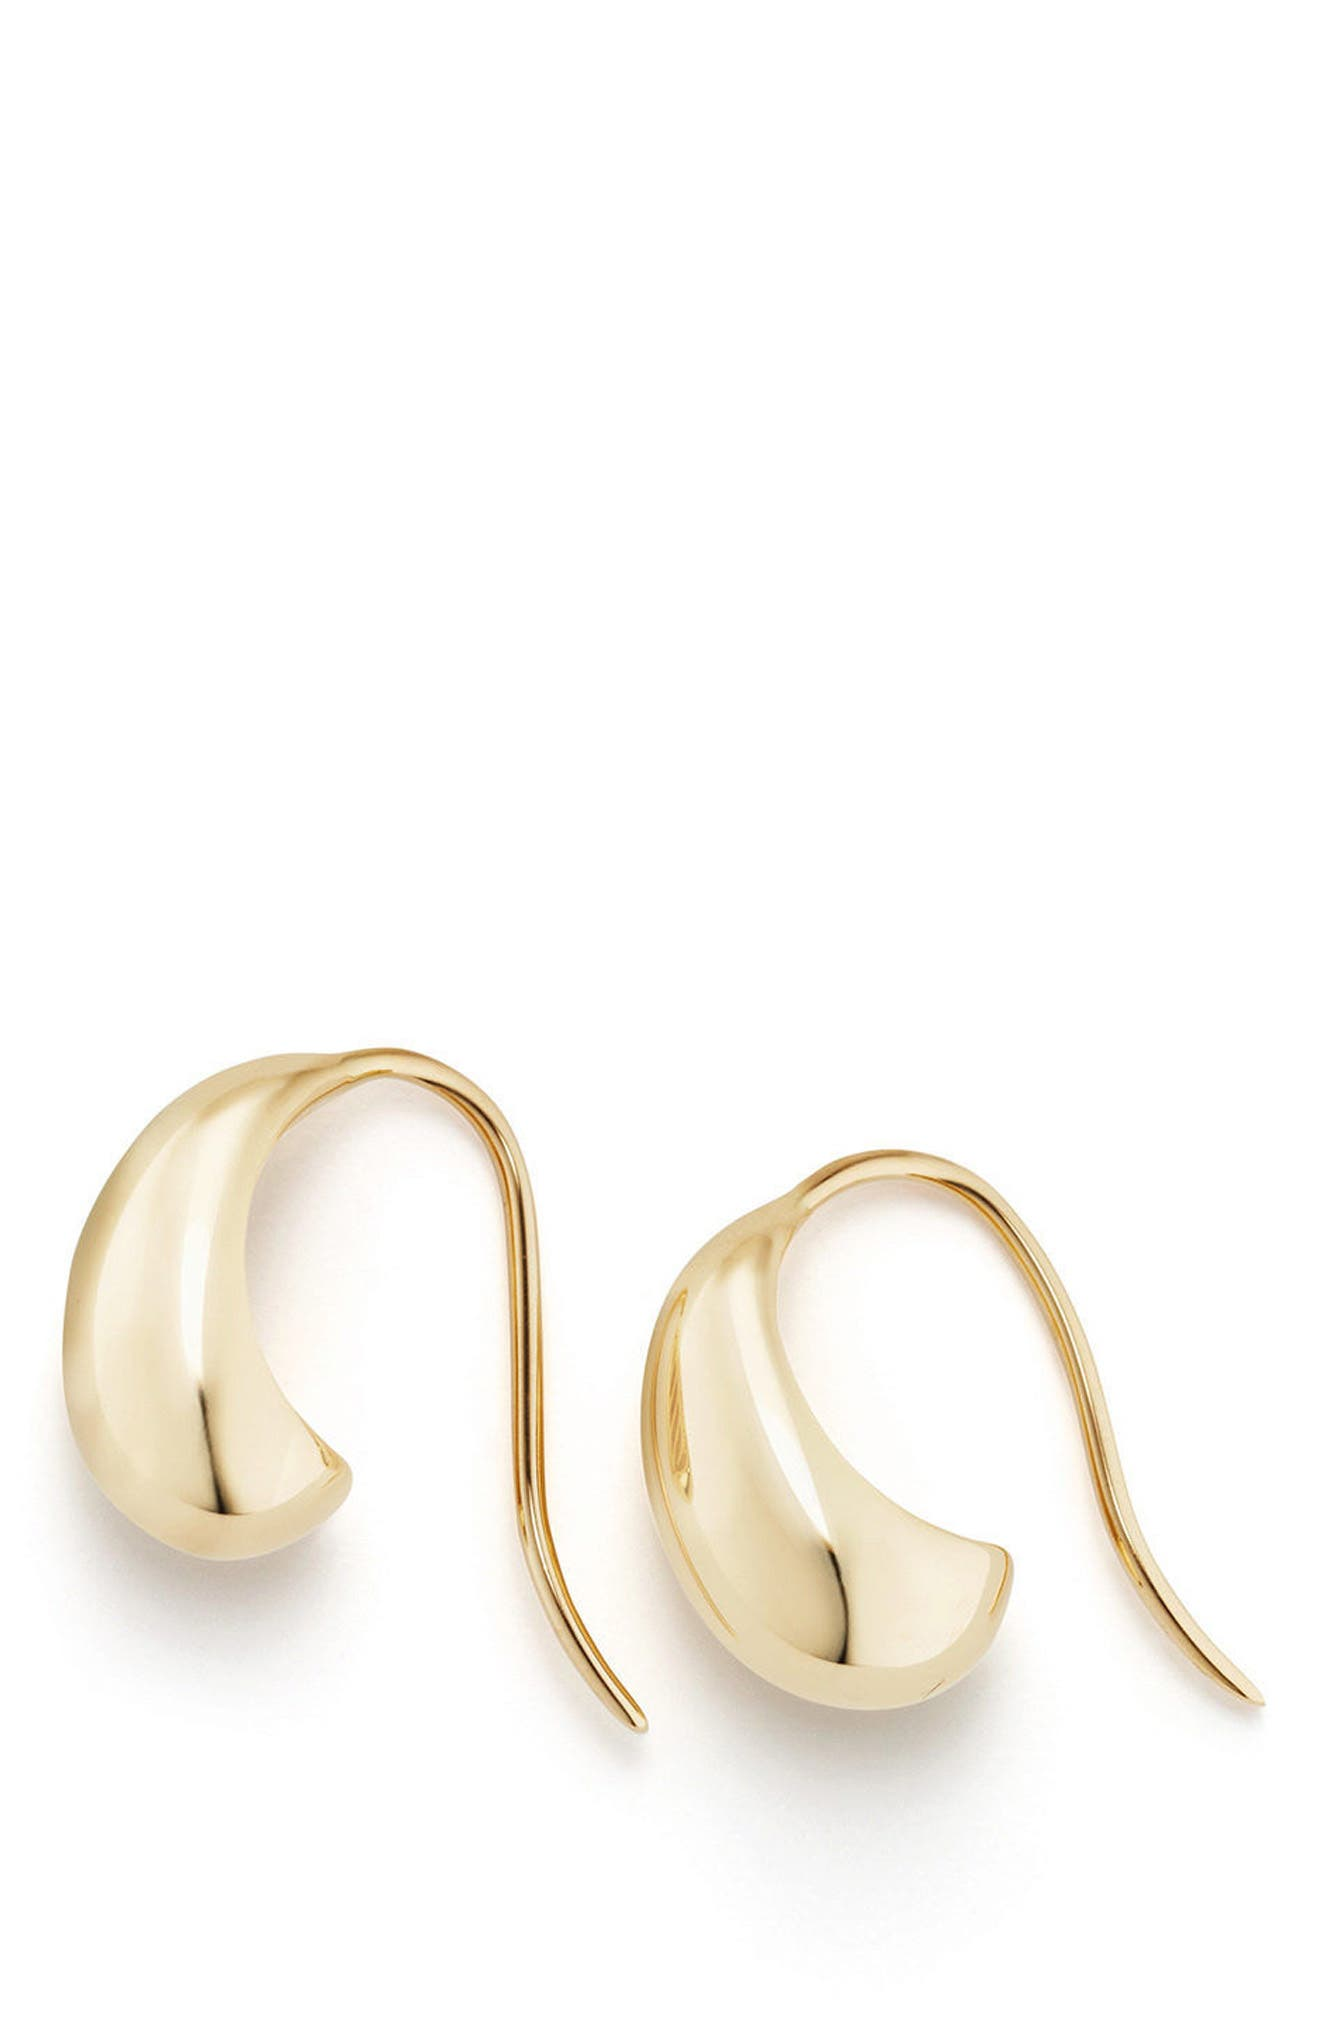 Pure Form Pod Earrings with Diamonds in 18K Gold, 15mm,                             Alternate thumbnail 2, color,                             YELLOW GOLD